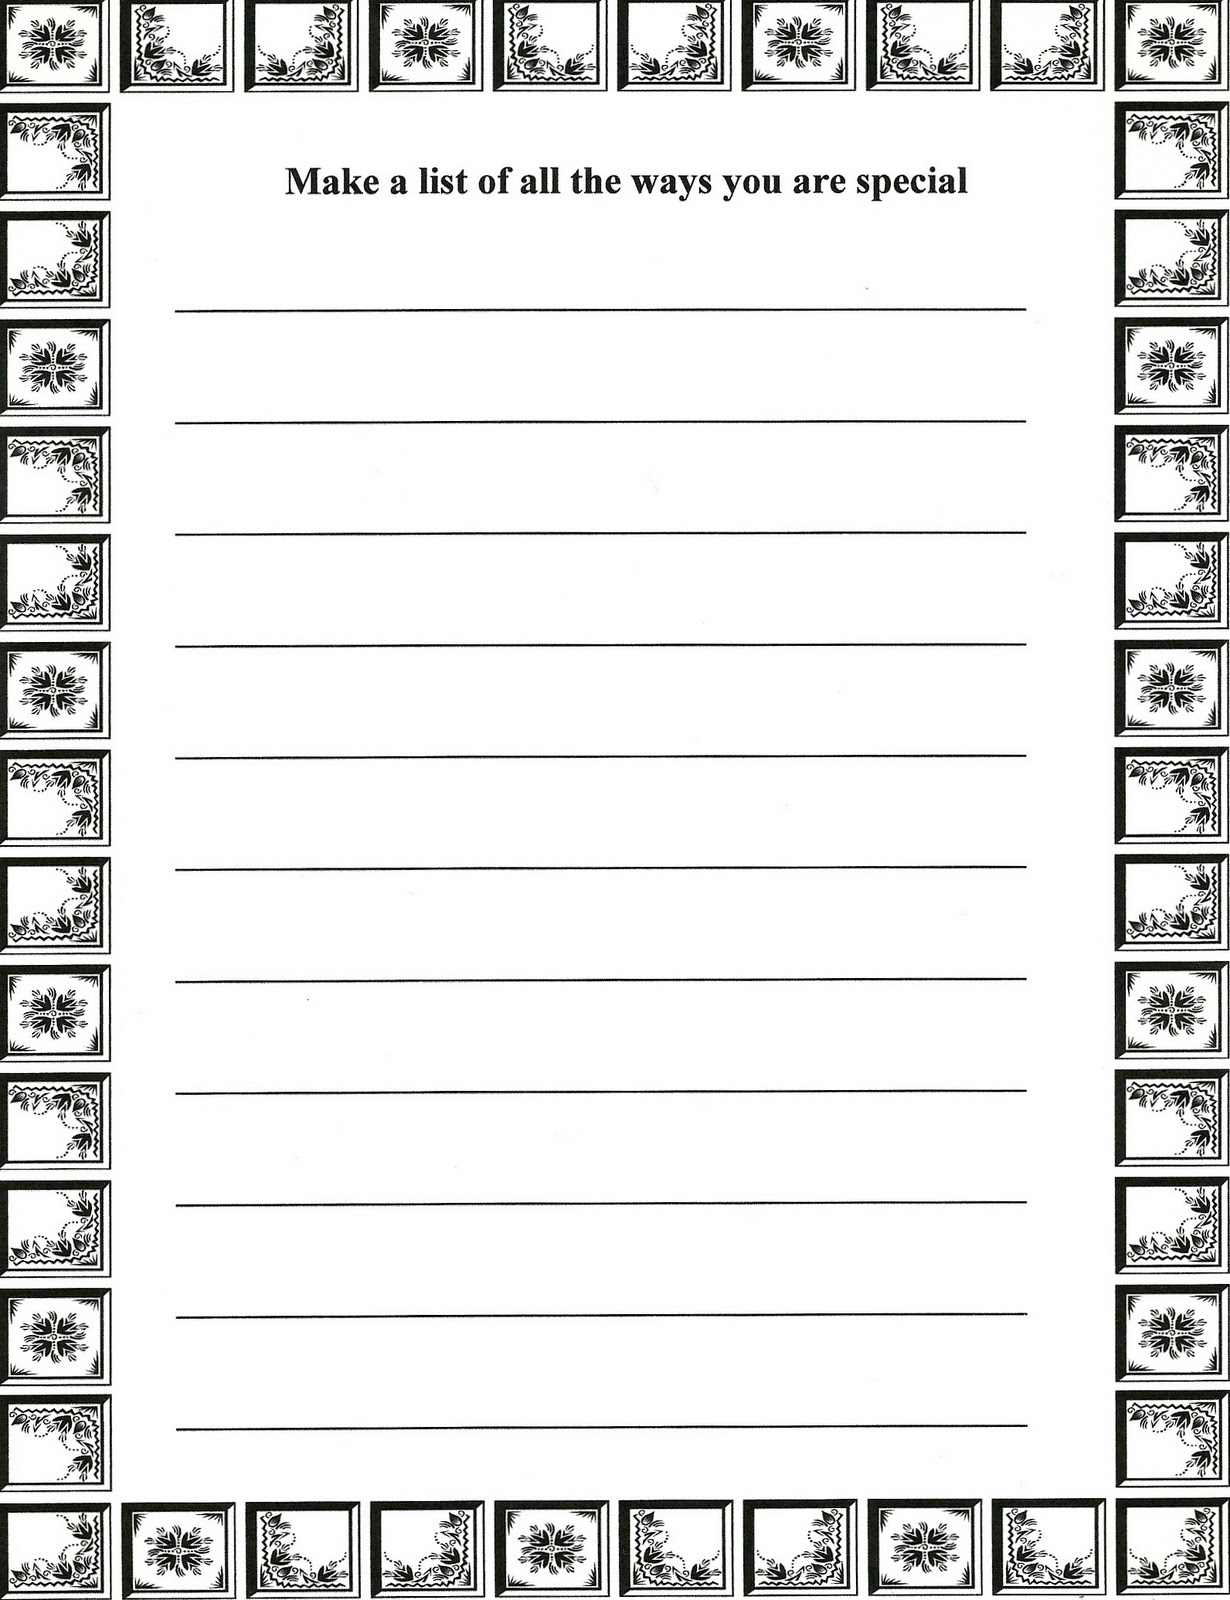 also GET 7 FREE SELF ESTEM WORKSHEETS FOR KIDS or CH besides Self Esteem Worksheets for Kids Self Esteem Journal Worksheet together with Free Worksheets Liry   Download and Print Worksheets   Free on moreover Self Esteem Worksheet For Kids   Checks Worksheet moreover  together with  also  additionally Printable self esteem worksheets for kids  teens and adults likewise confidence and self esteem worksheets – asylumpolicy info in addition  also These Self esteem Activities Prove It's Never Too Late to Begin also Printable self esteem worksheets for kids  teens and adults also Self Esteem Worksheets   Winonarasheed furthermore Free Self Esteem Worksheets For Children in addition Printable self esteem worksheets for kids  teens and adults. on self esteem worksheets for kids